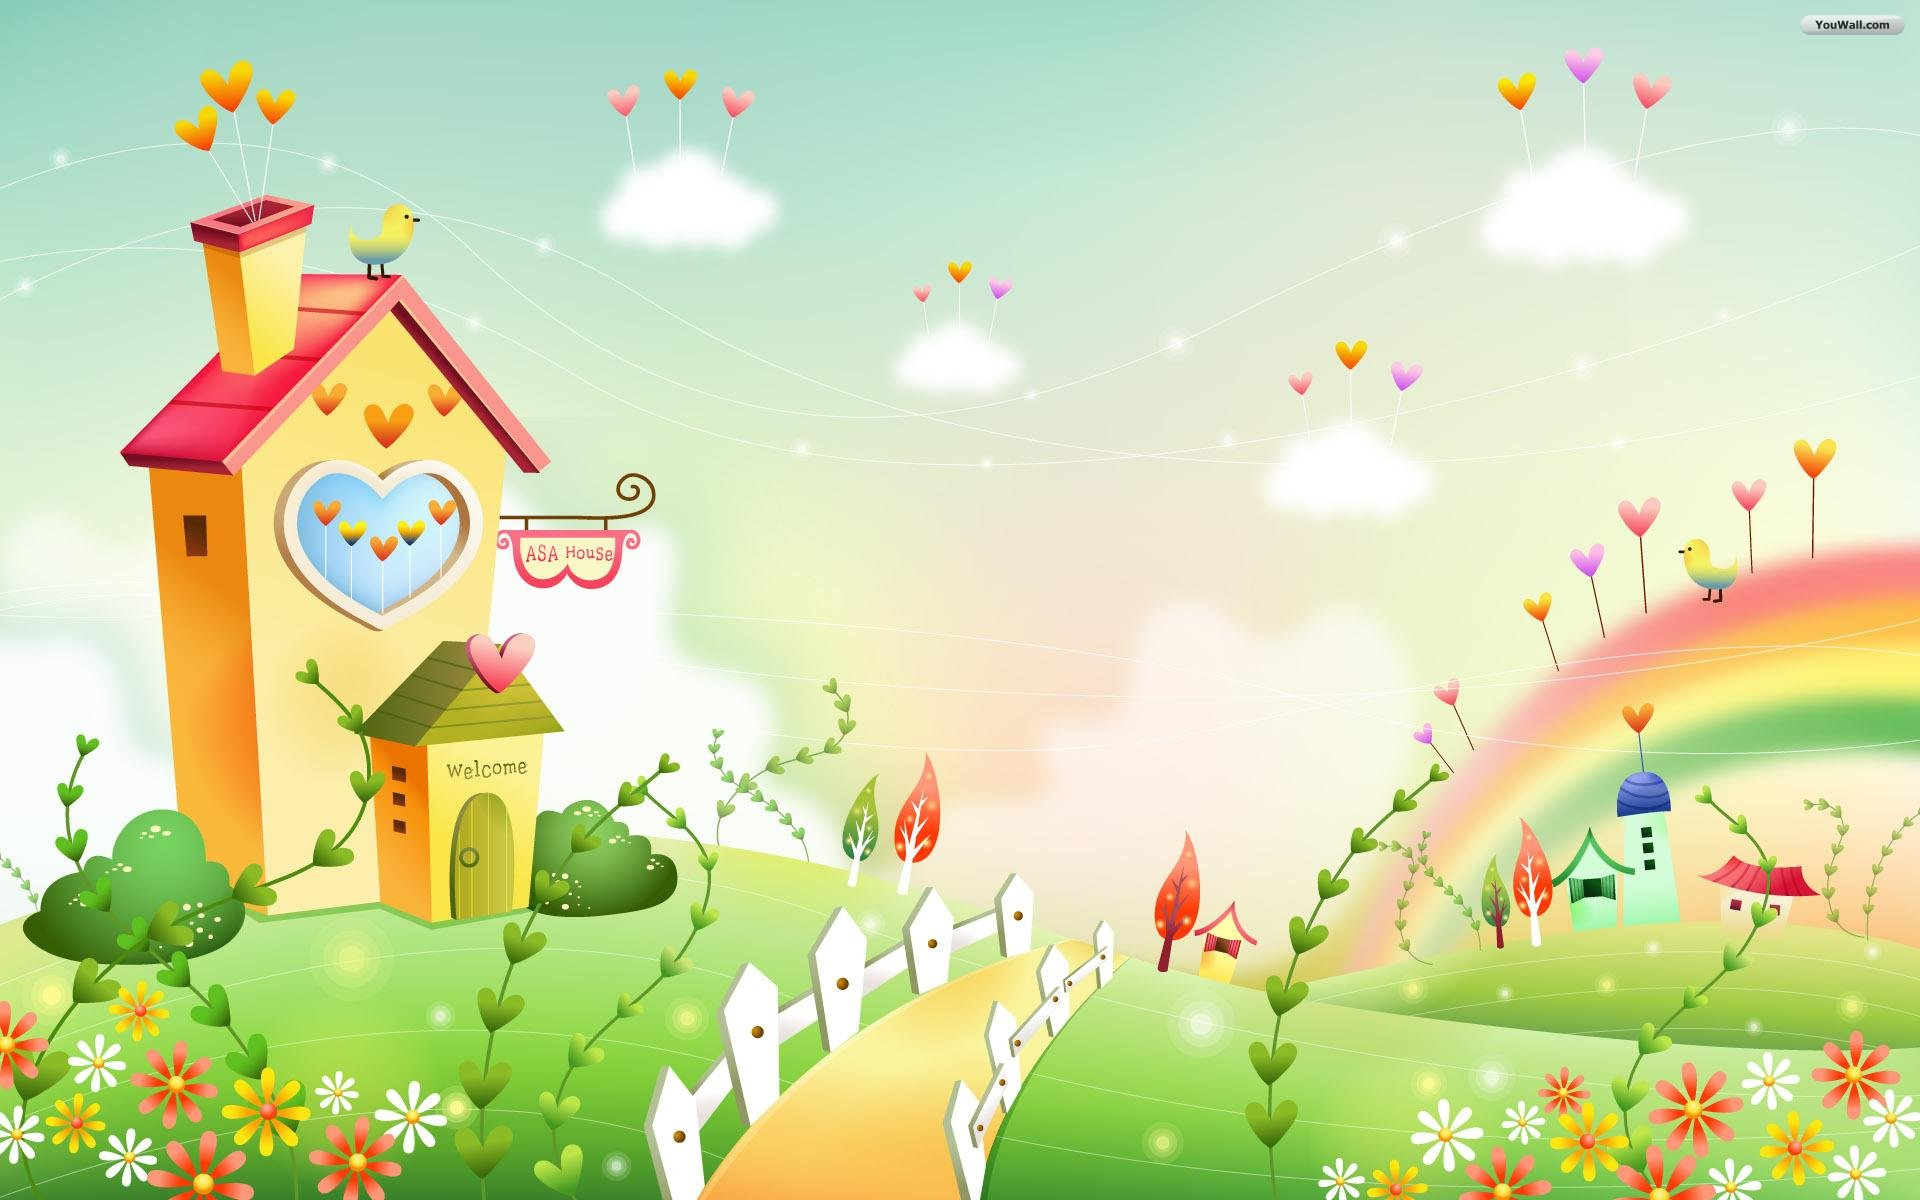 happy_land_wallpaper_60d9a